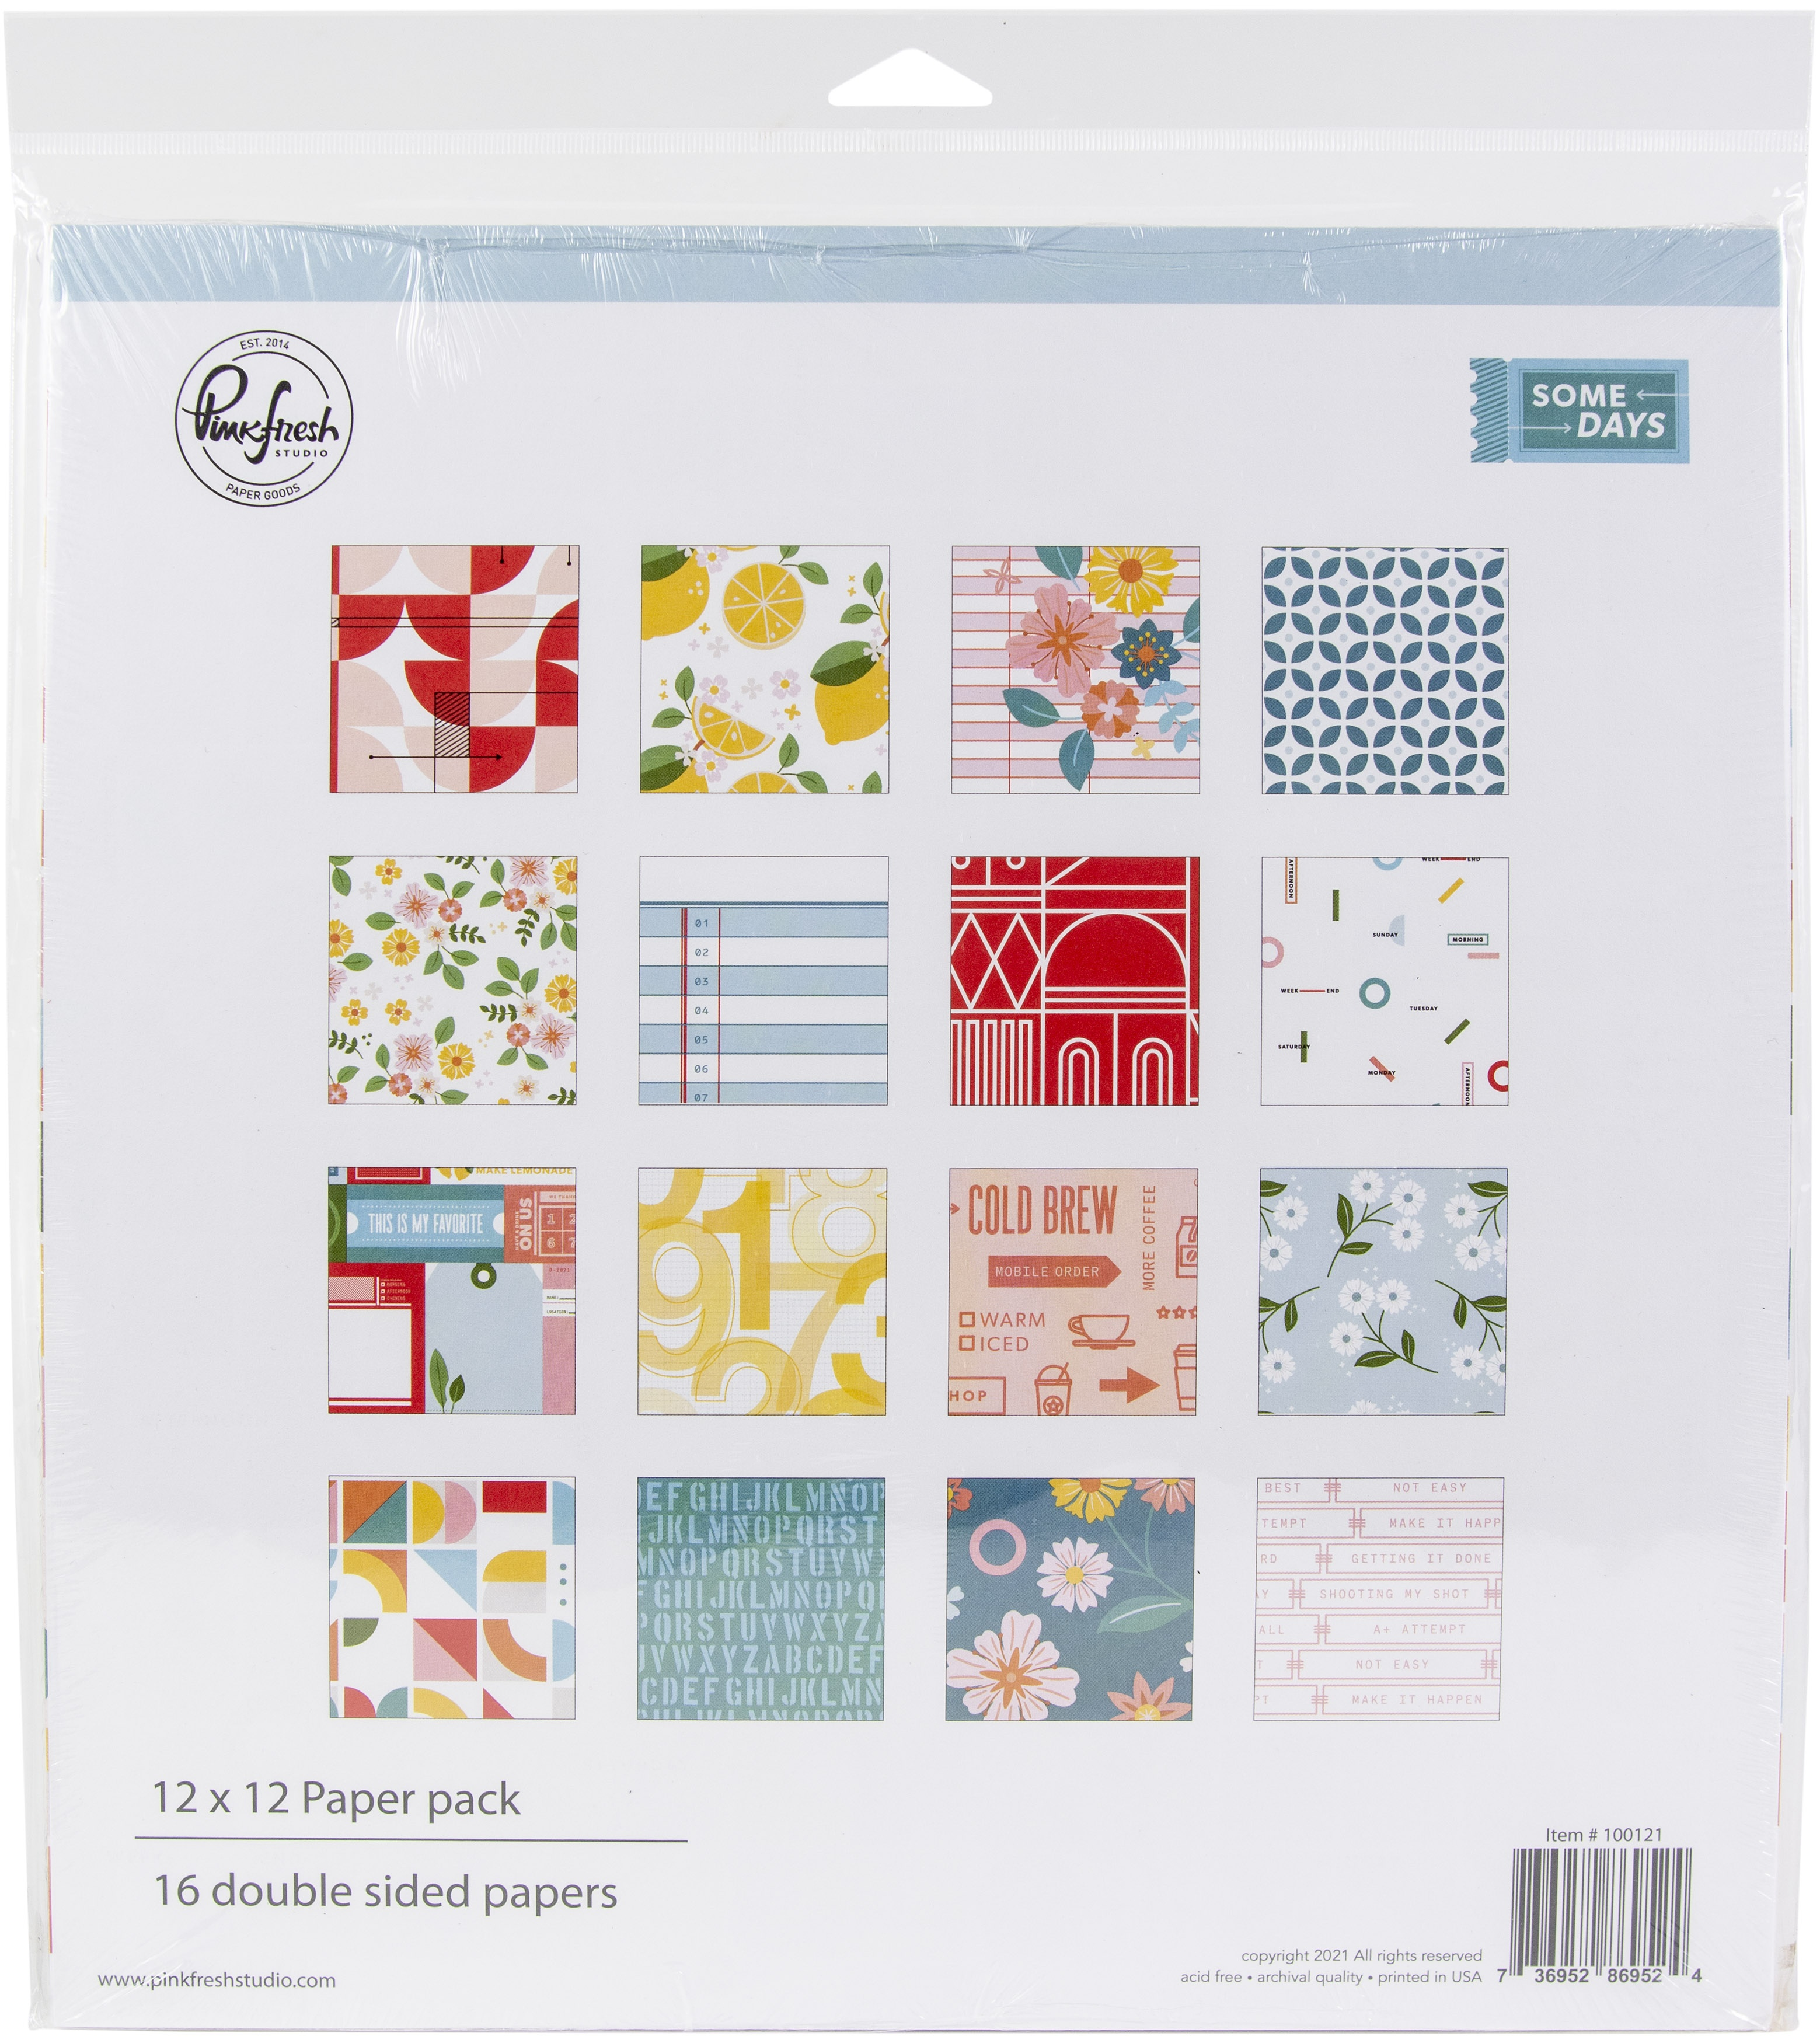 PinkFresh Studio Double-Sided Paper Pack 12X12 16/Pkg-Some Days, 8 Designs/2 Each